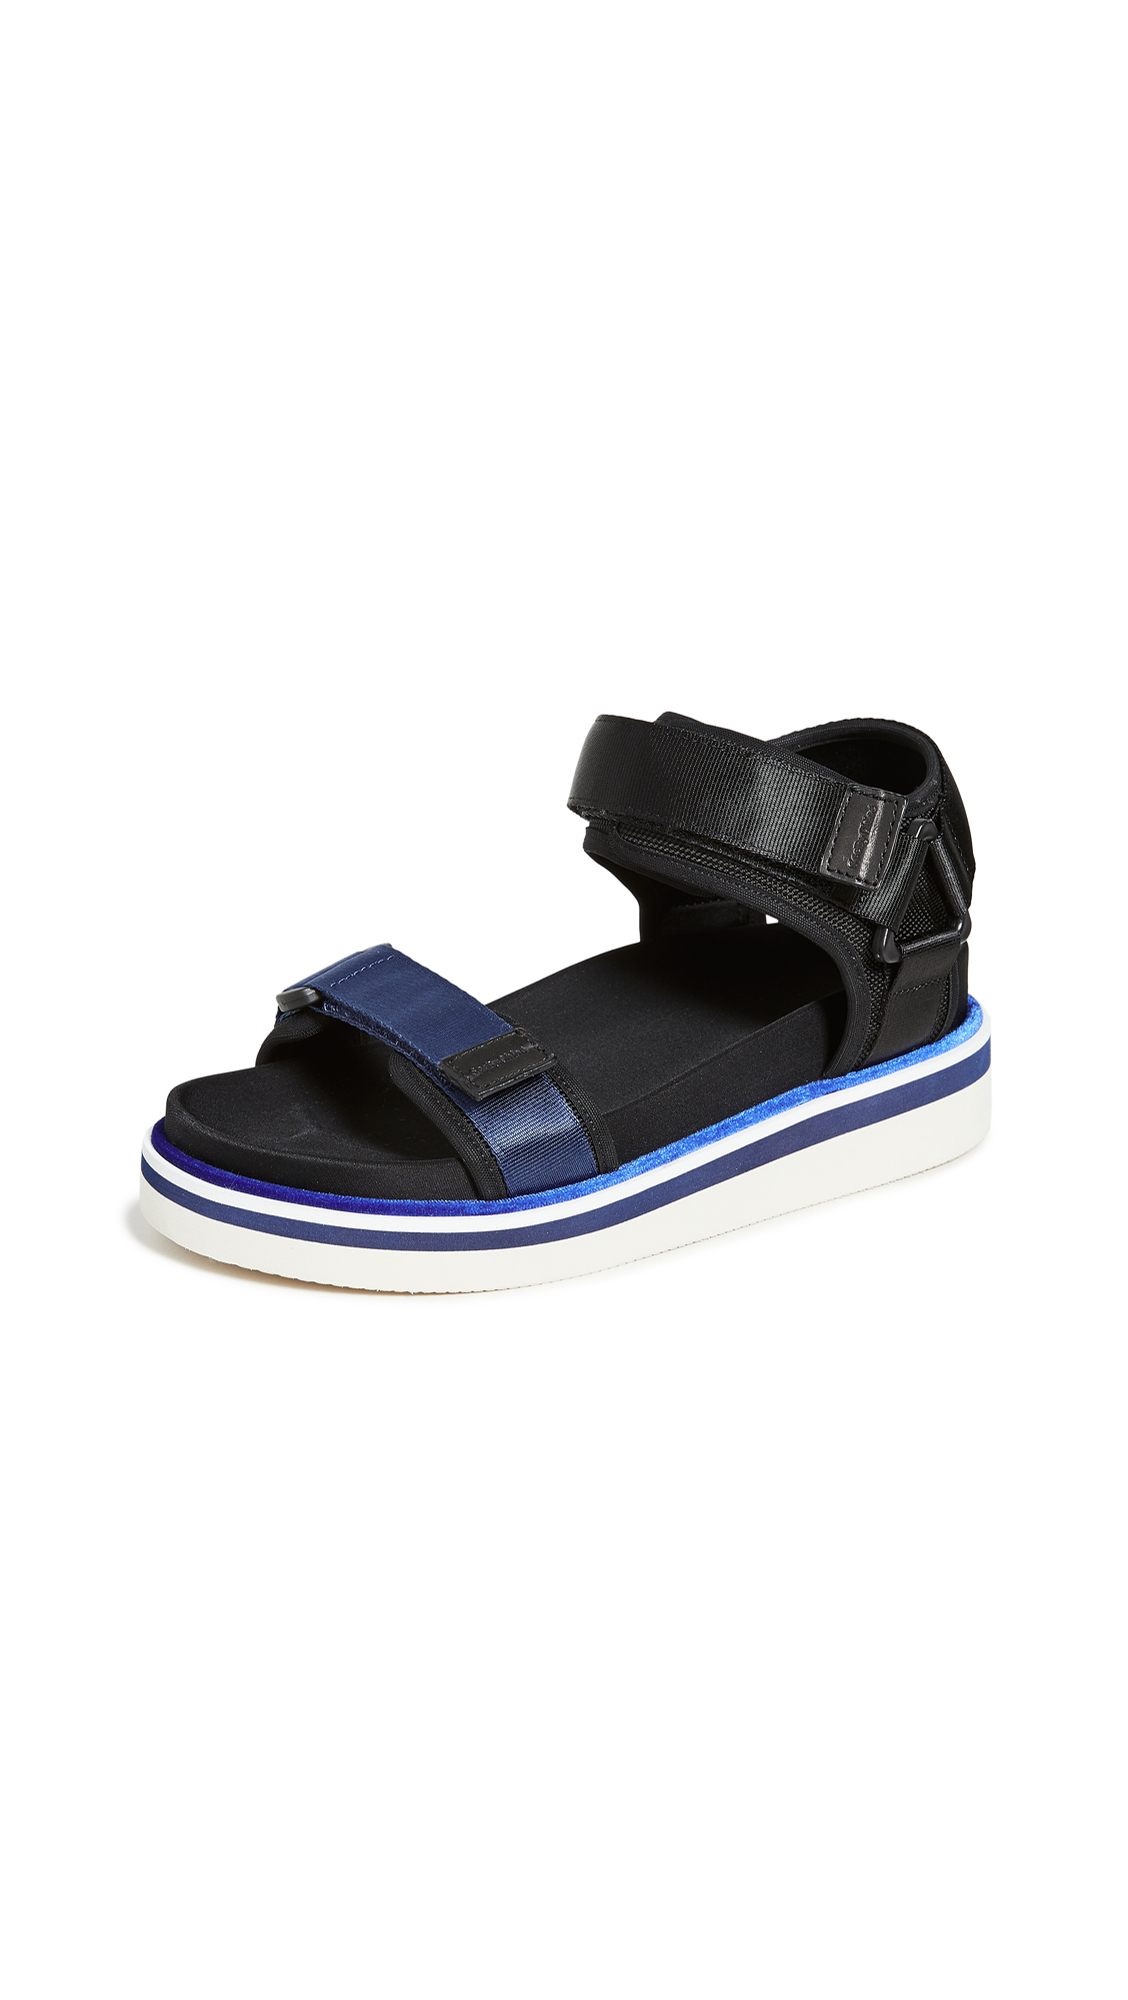 See by Chloe Yumi Ankle Strap Sandals